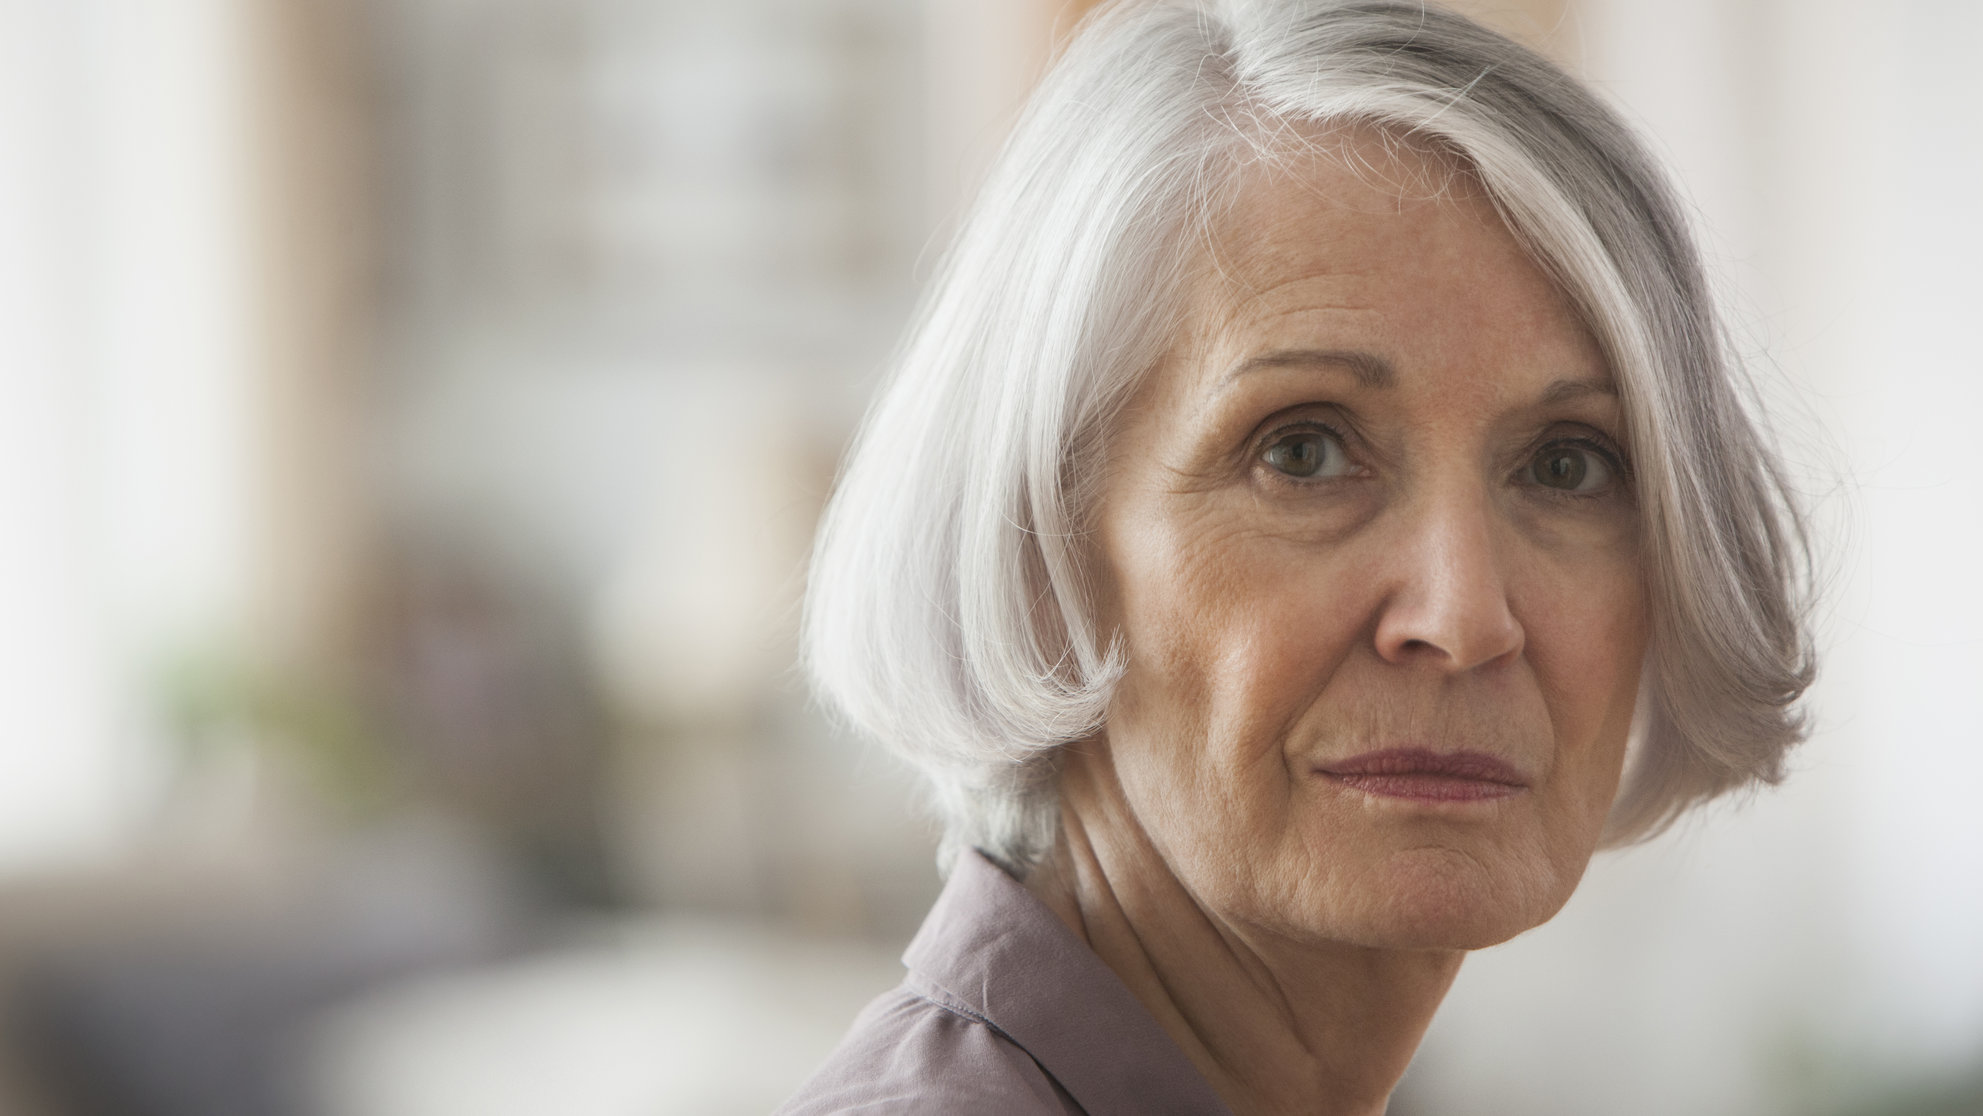 Women Have Better Memories Than Men—at Least Until Menopause